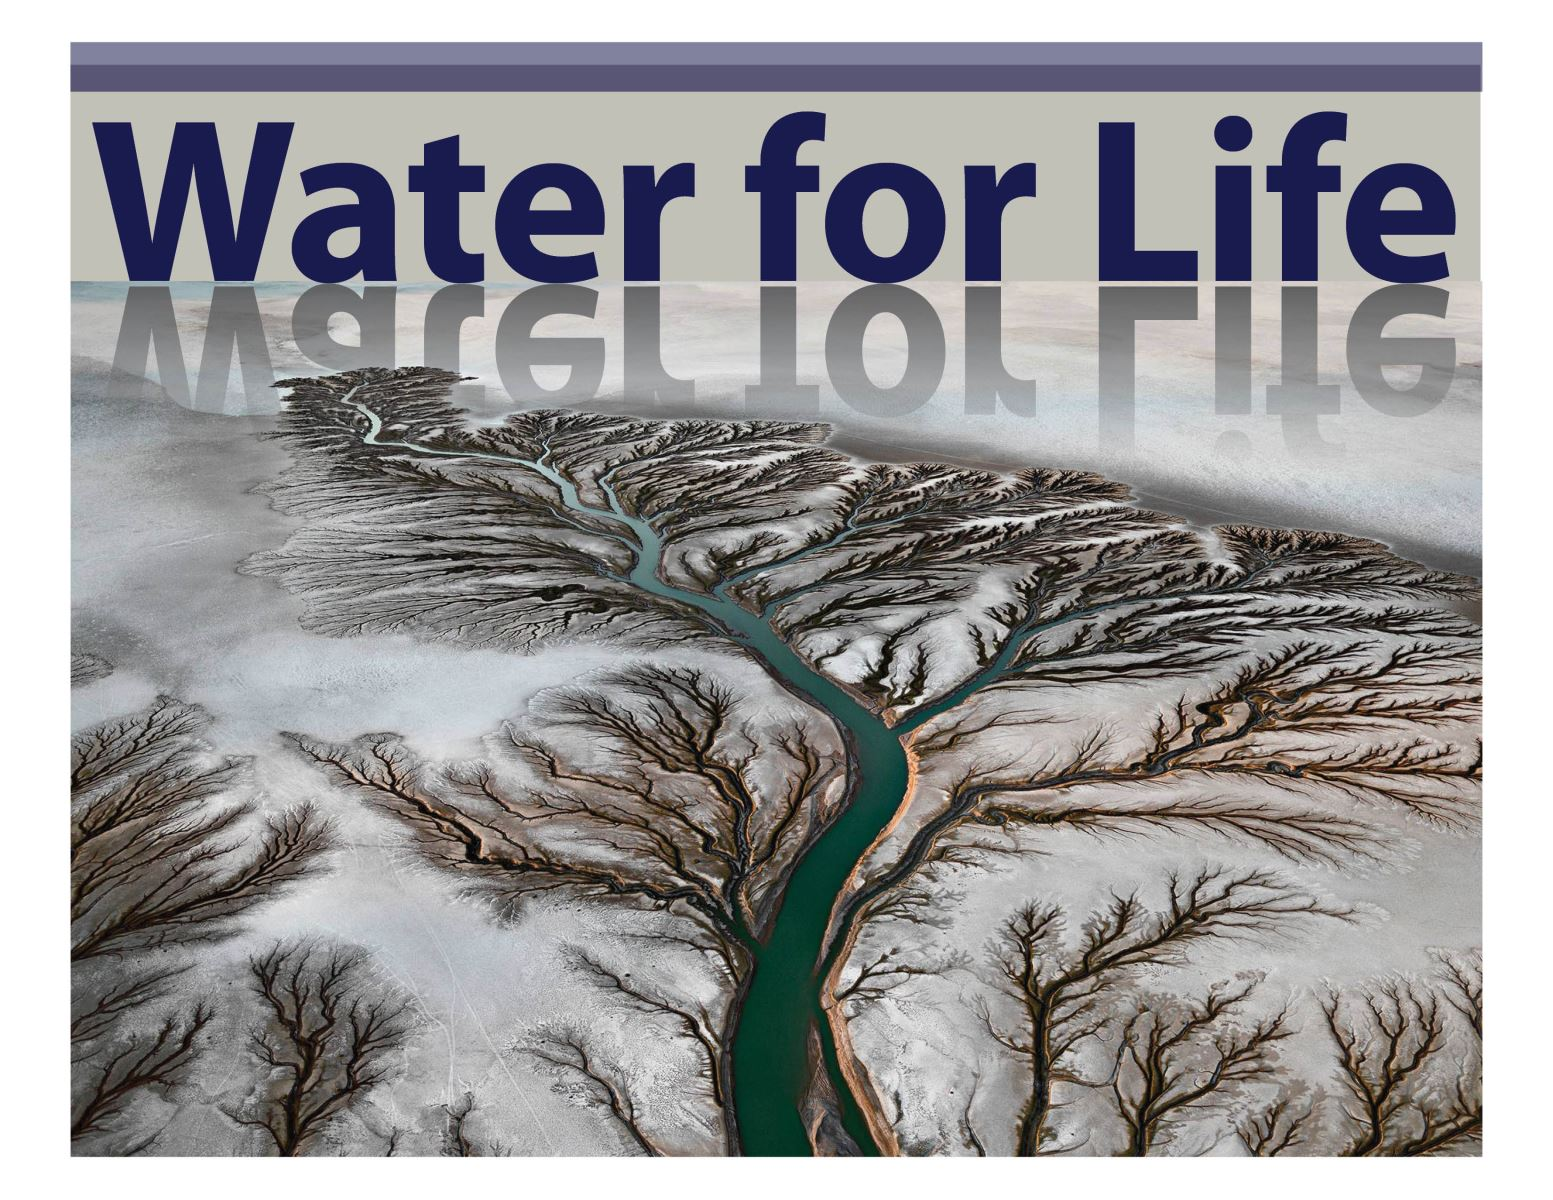 Water for Life Image.jpg